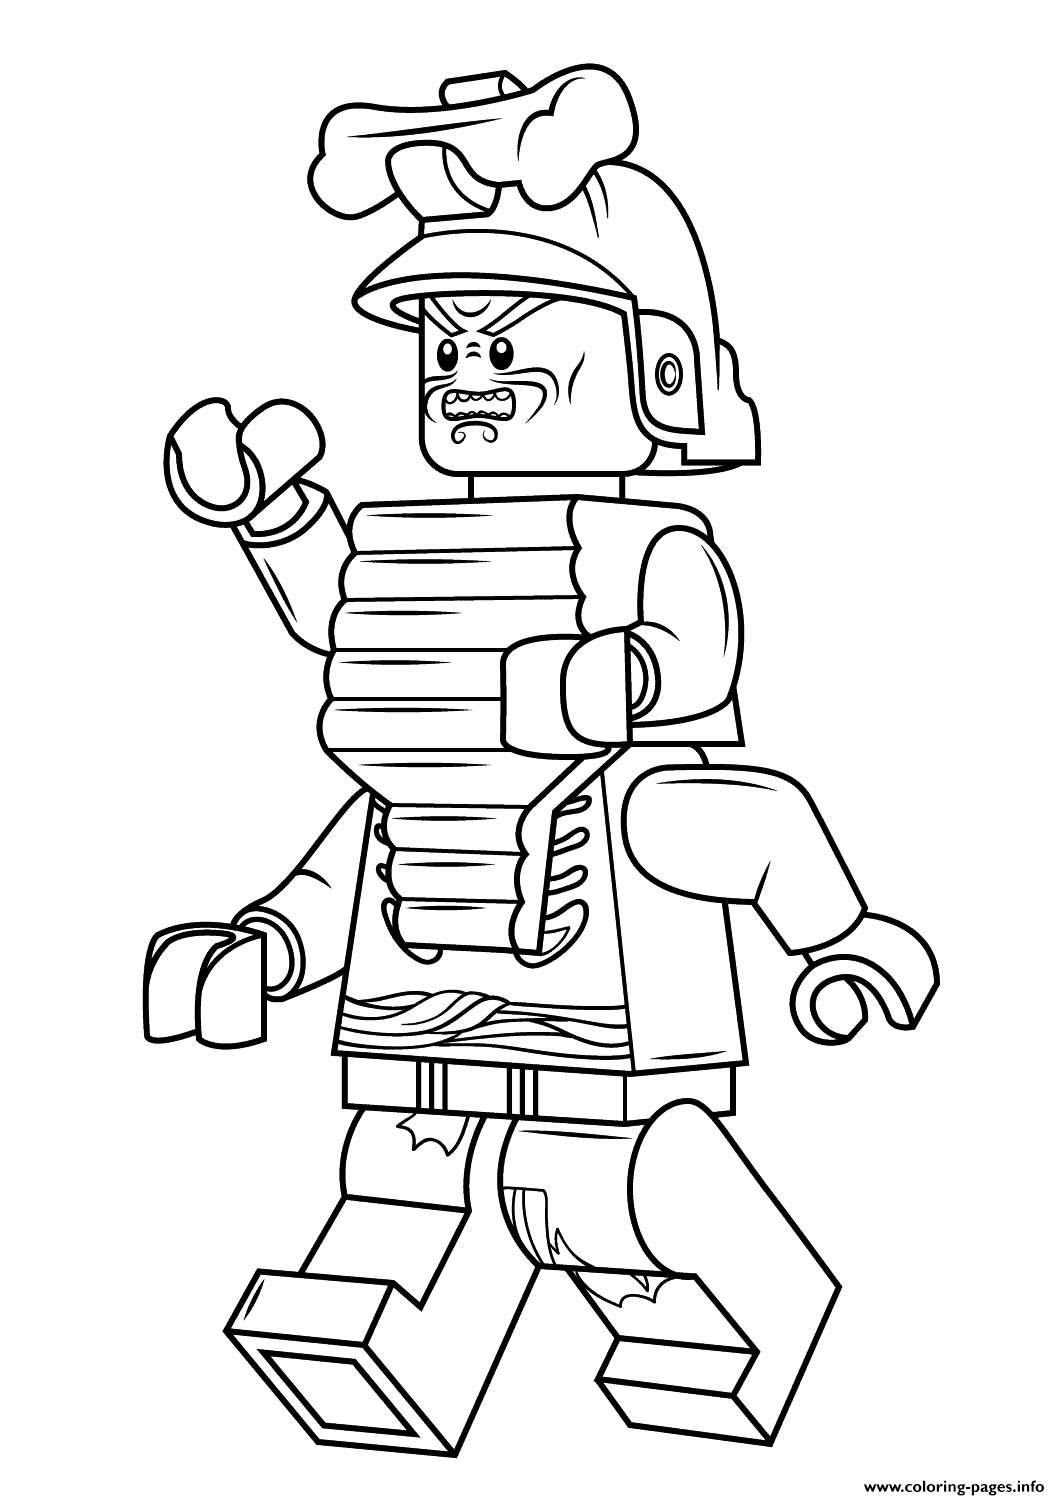 Print Lego Ninjago Lord Garmadon Coloring Pages Christmas Crochet